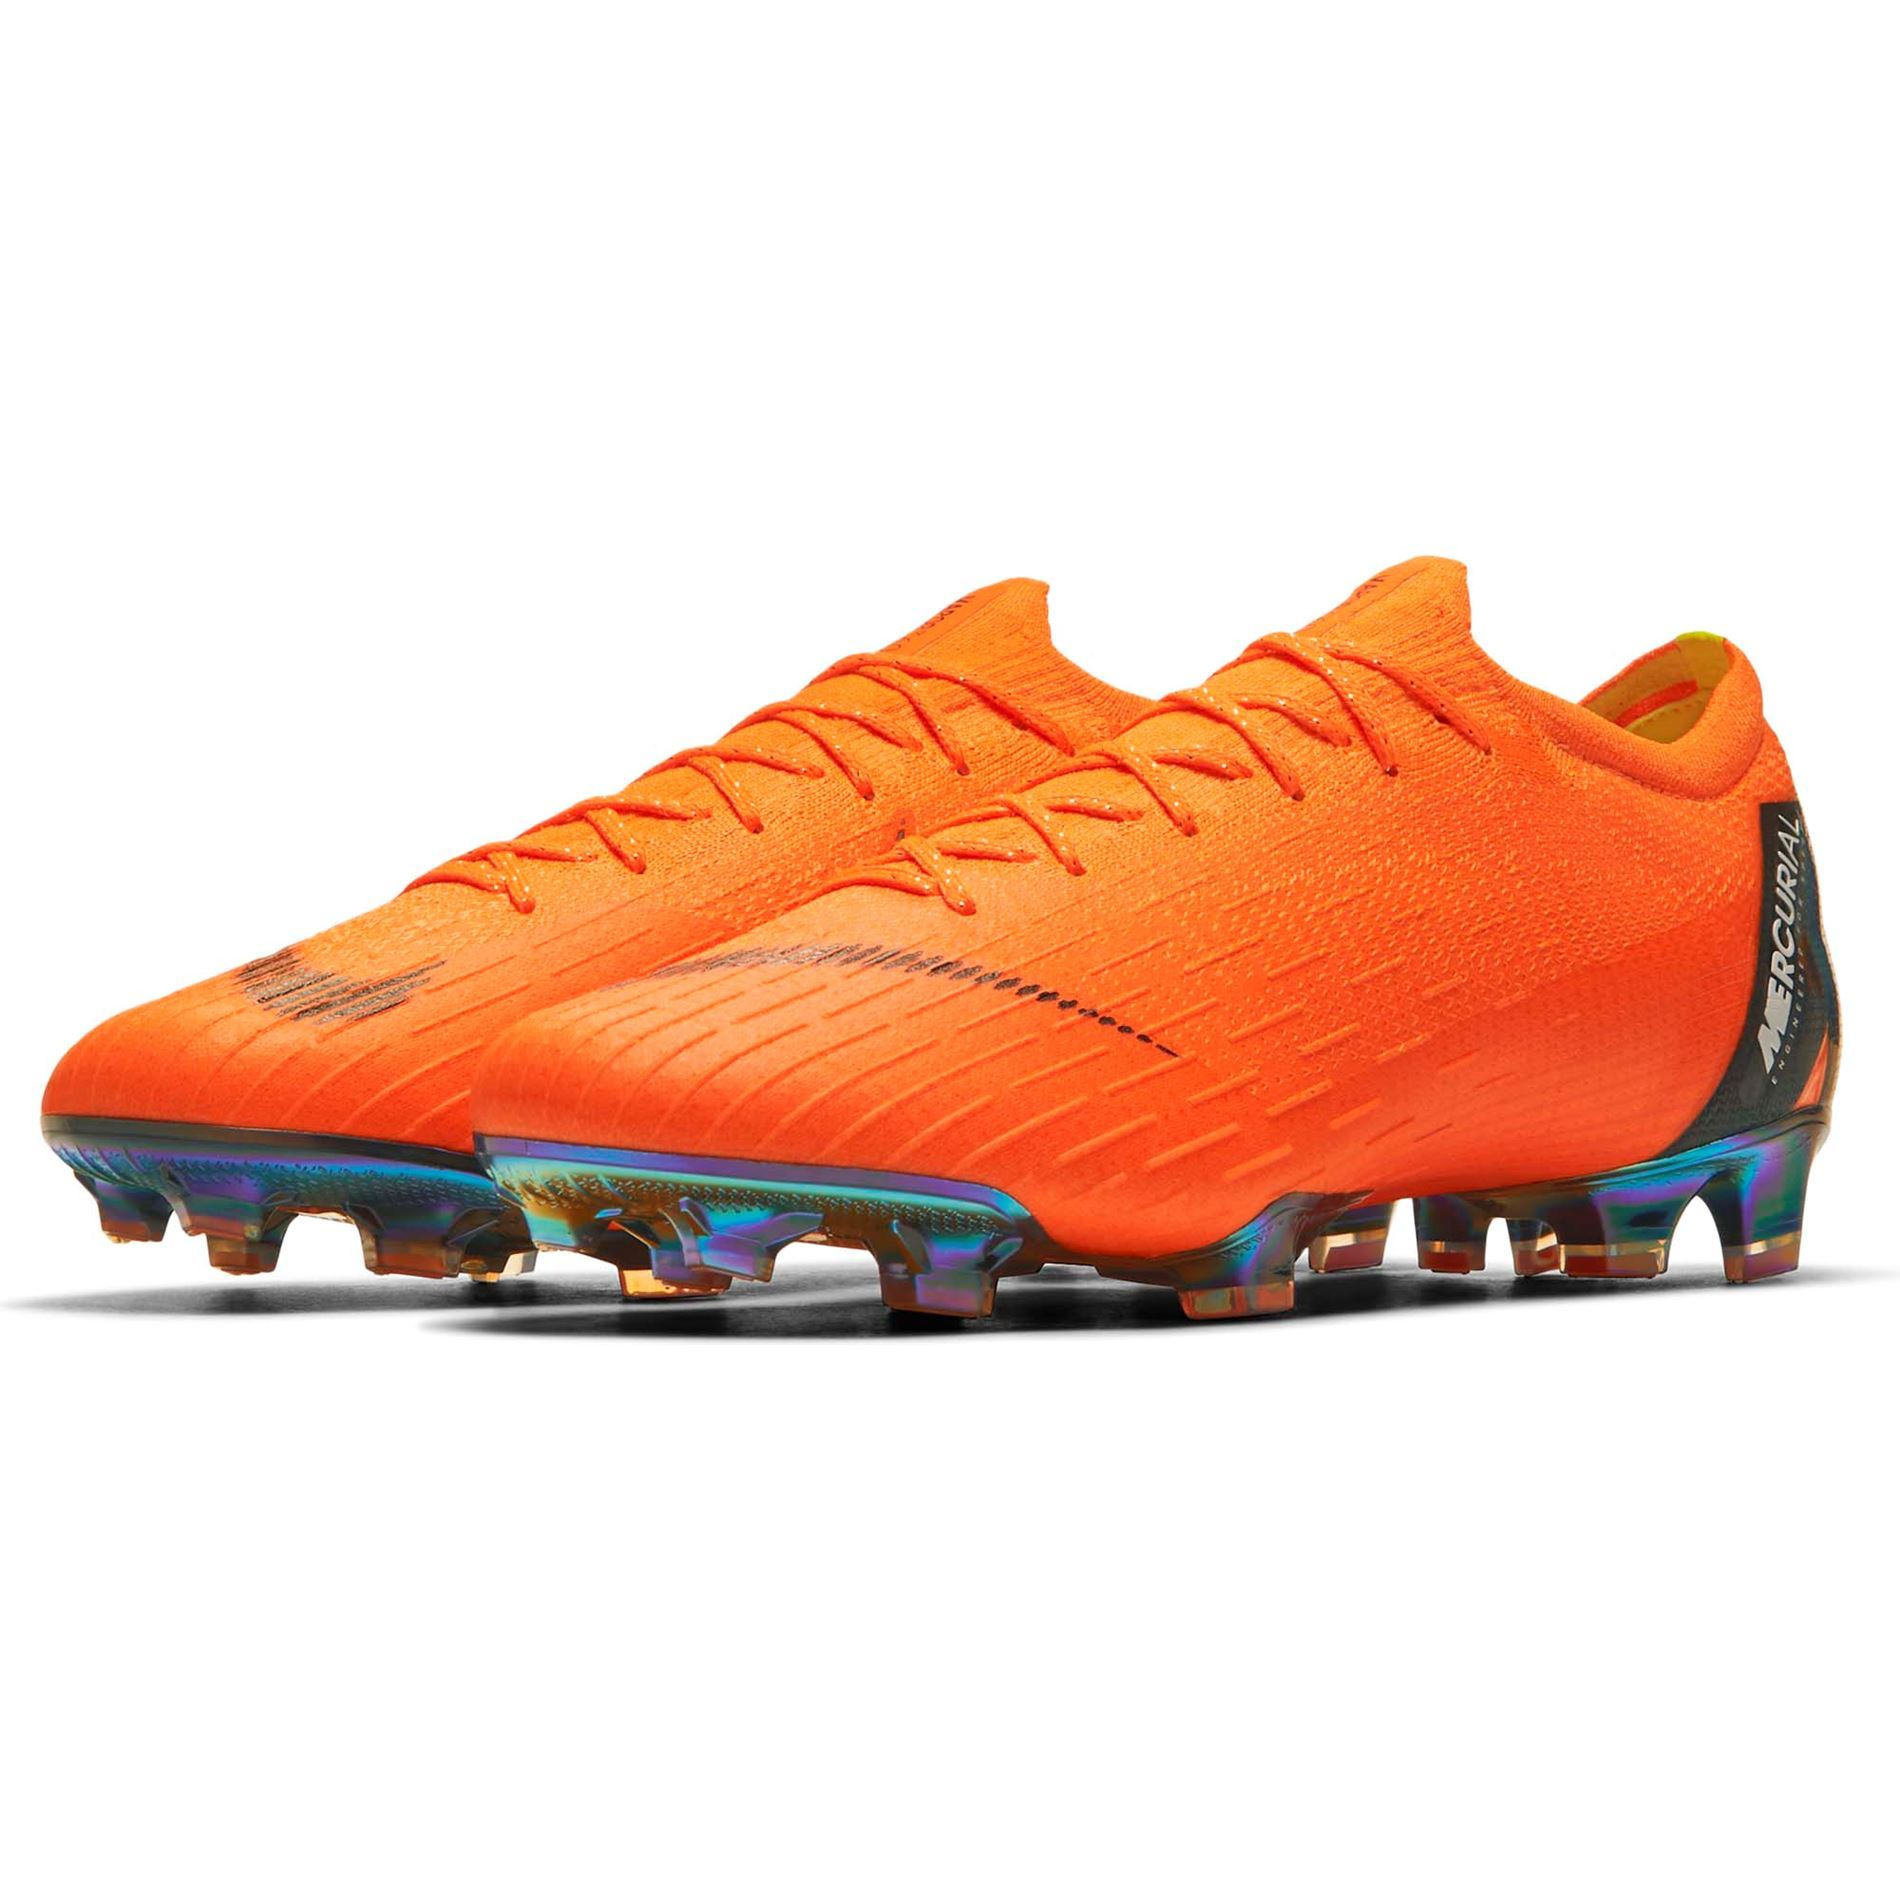 sports shoes 7cdca afa43 Nike Mercurial Vapor 360 Elite FG Fast AF